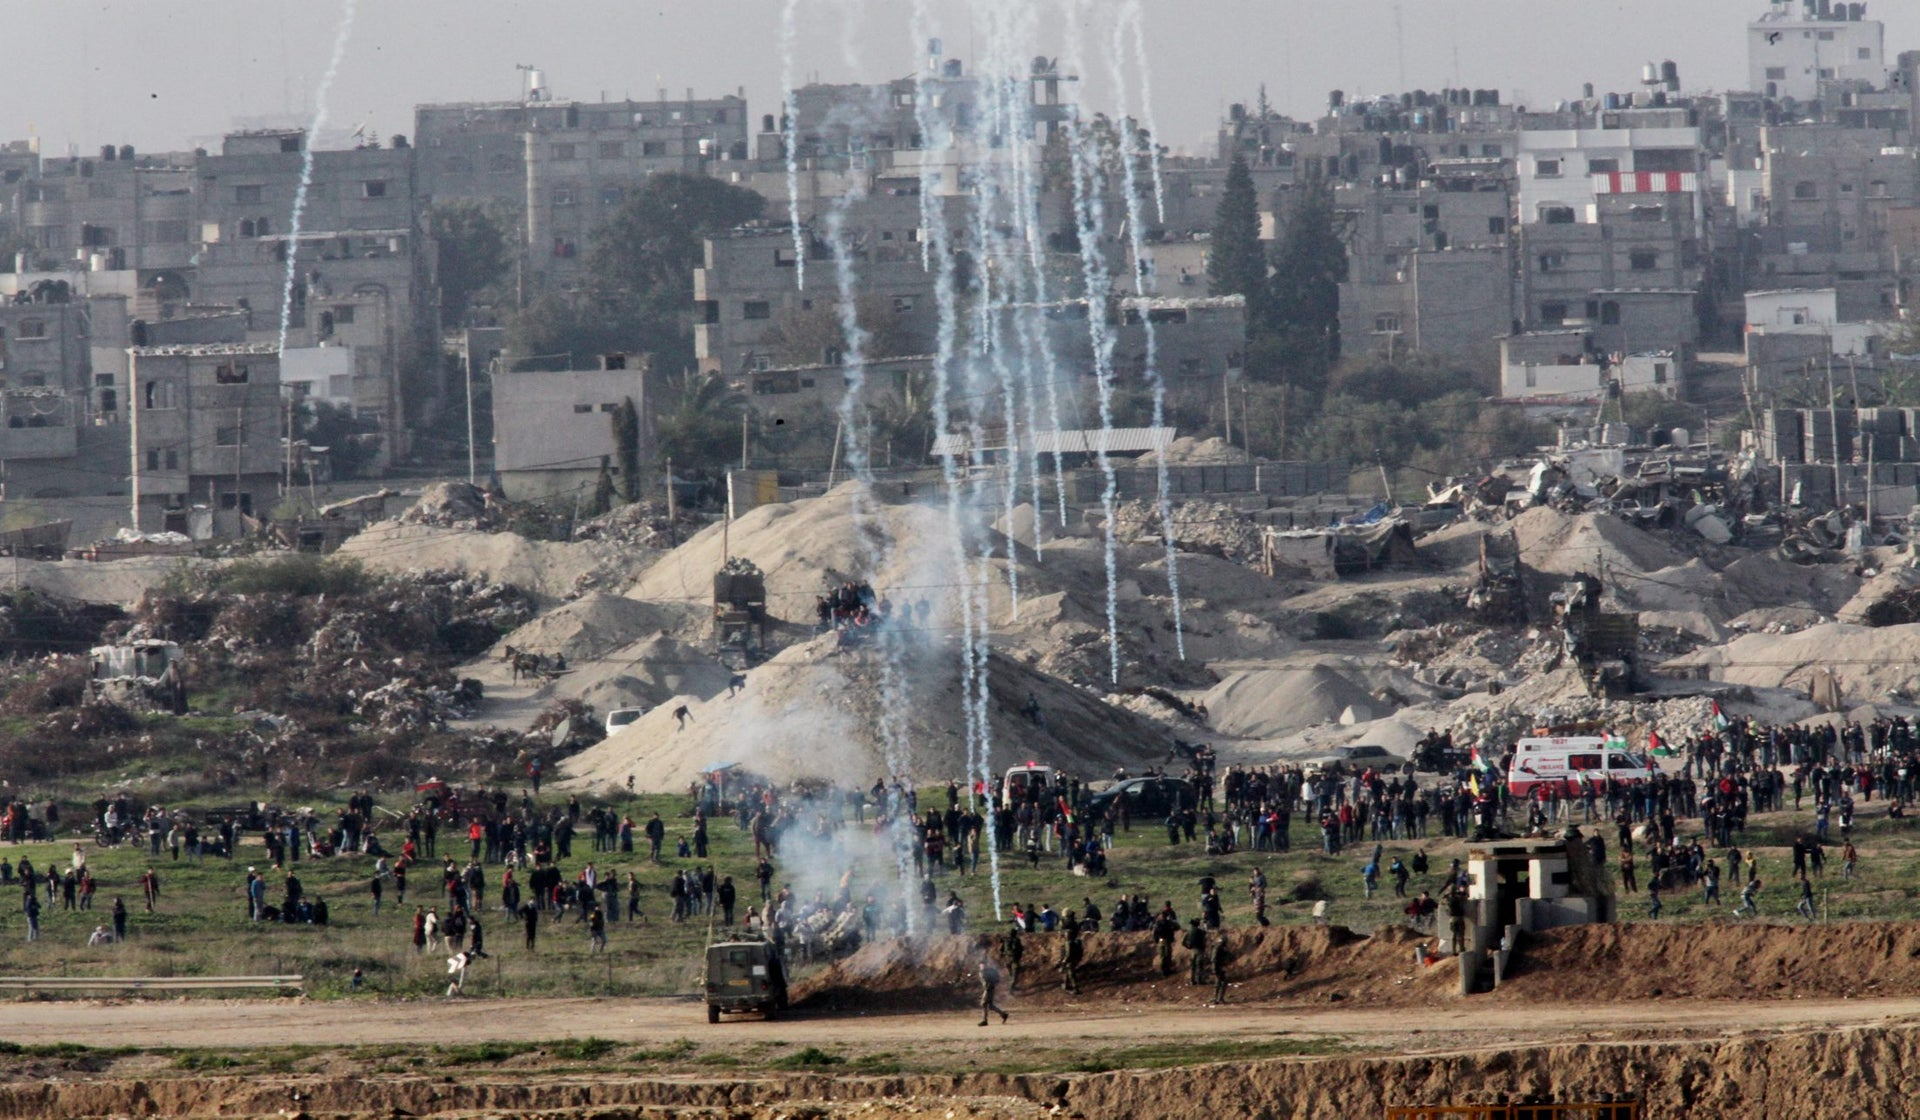 The view of Gaza, showing a confrontation between youngsters from Gaza and Israeli soldiers.